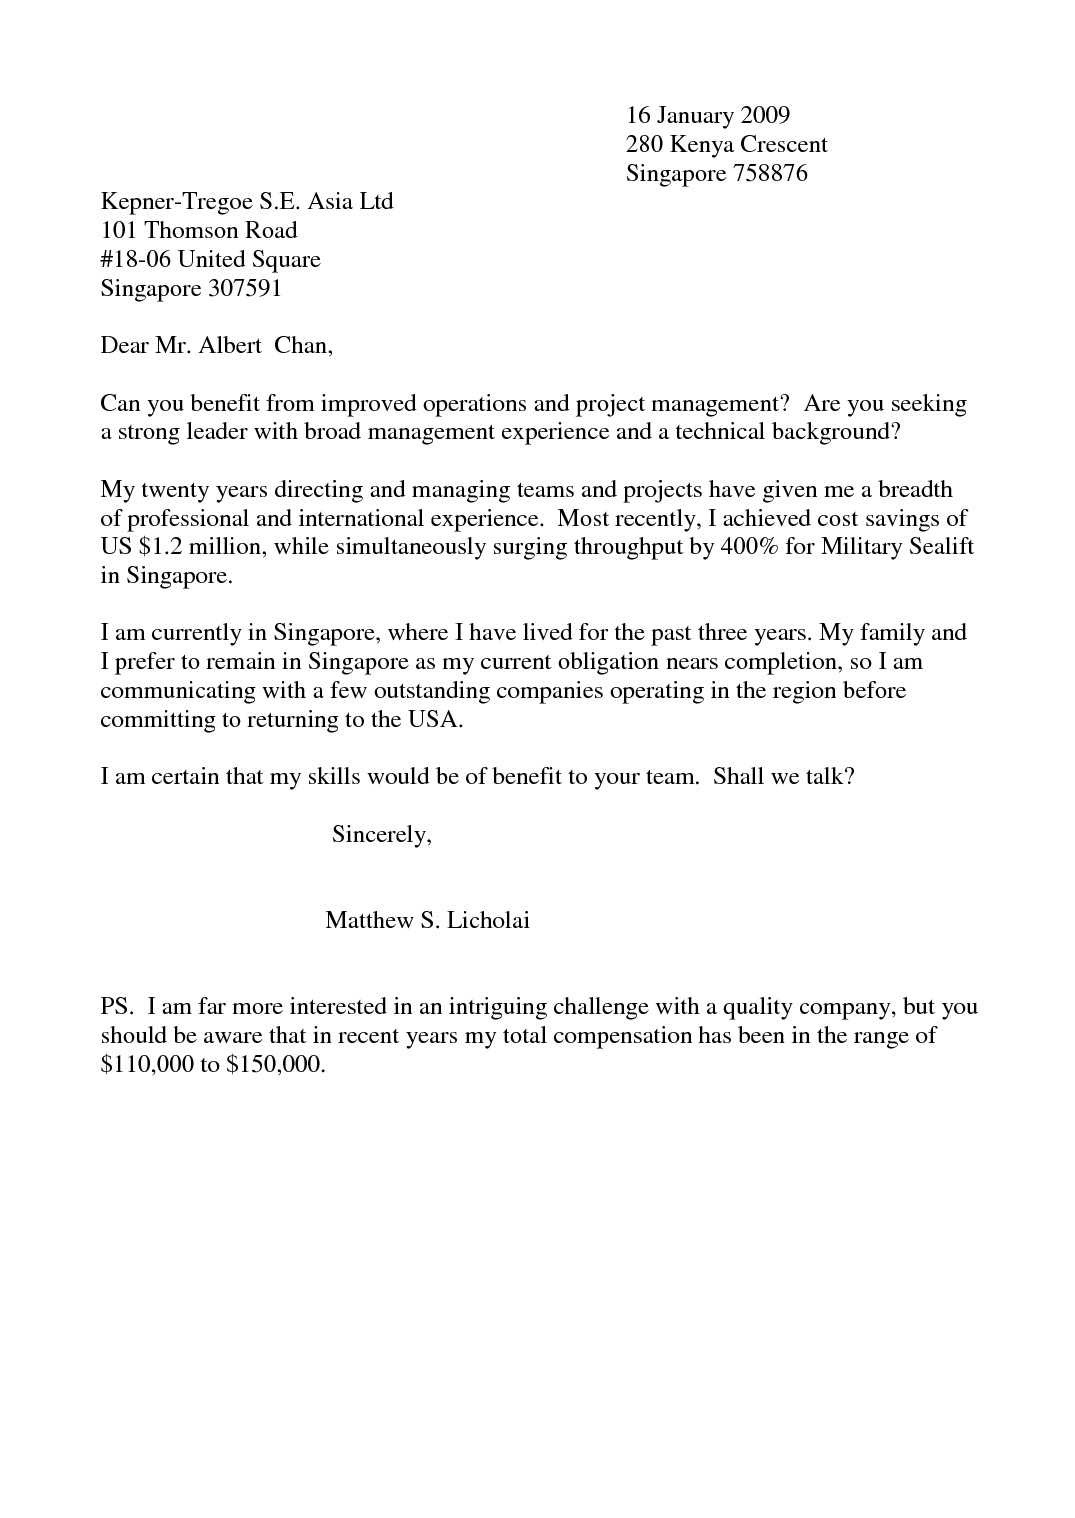 Cover Letter for Magazine Submission Cover Letter for Literary Magazine Submission